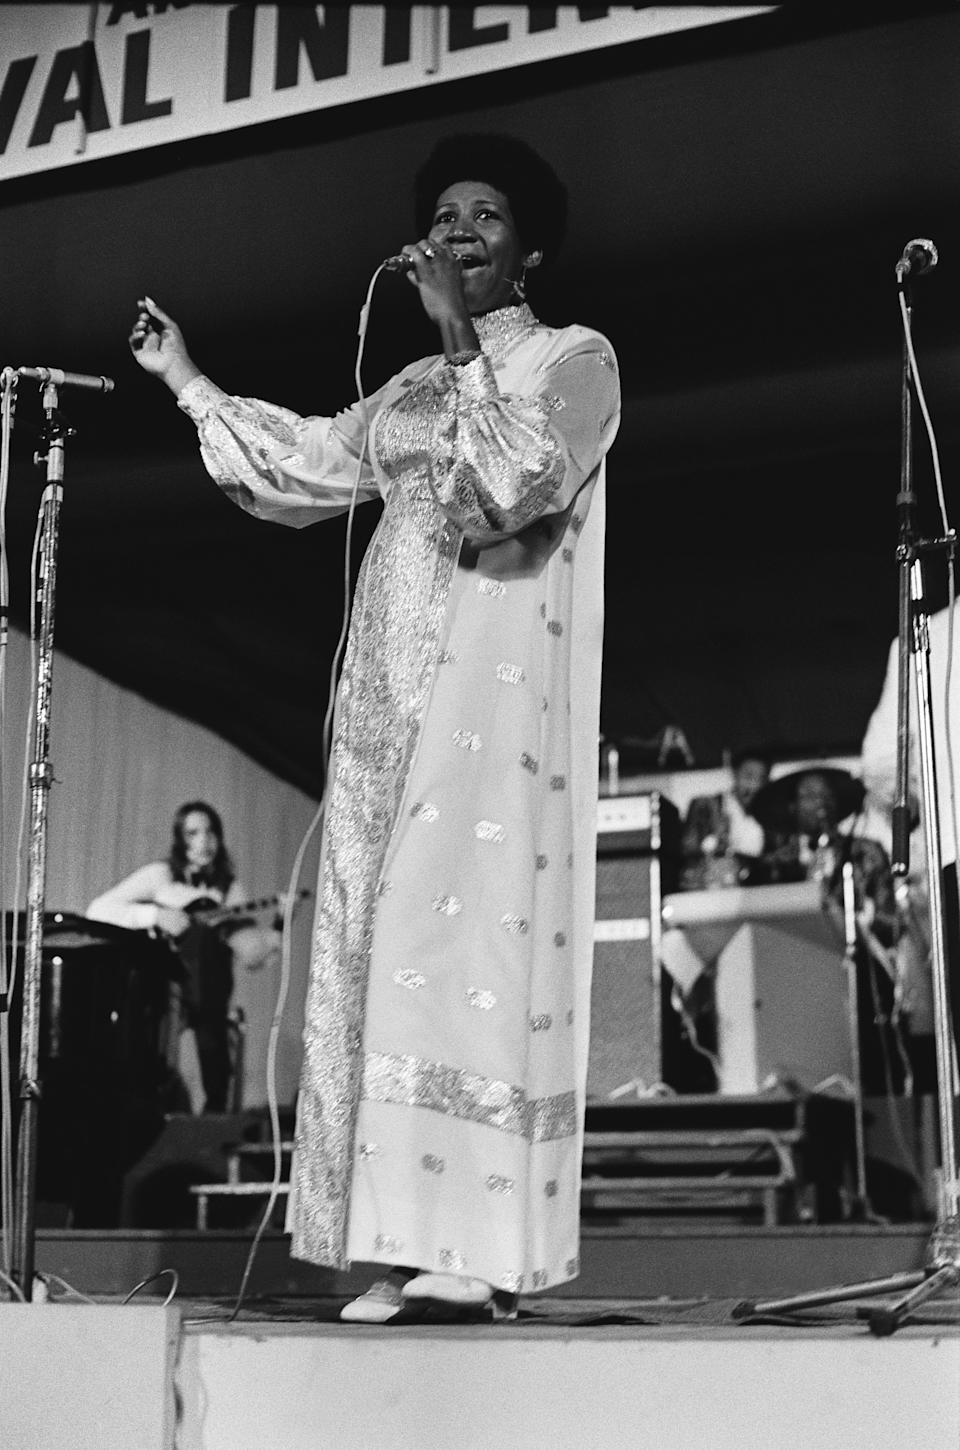 <p>Aretha Franklin wears a long-sleeve embroidred caftan dress with balloon sleeves and a teeny weeny Afro while performing at a jazz festival. (Photo by GAMMA/Gamma-Rapho via Getty Images) </p>